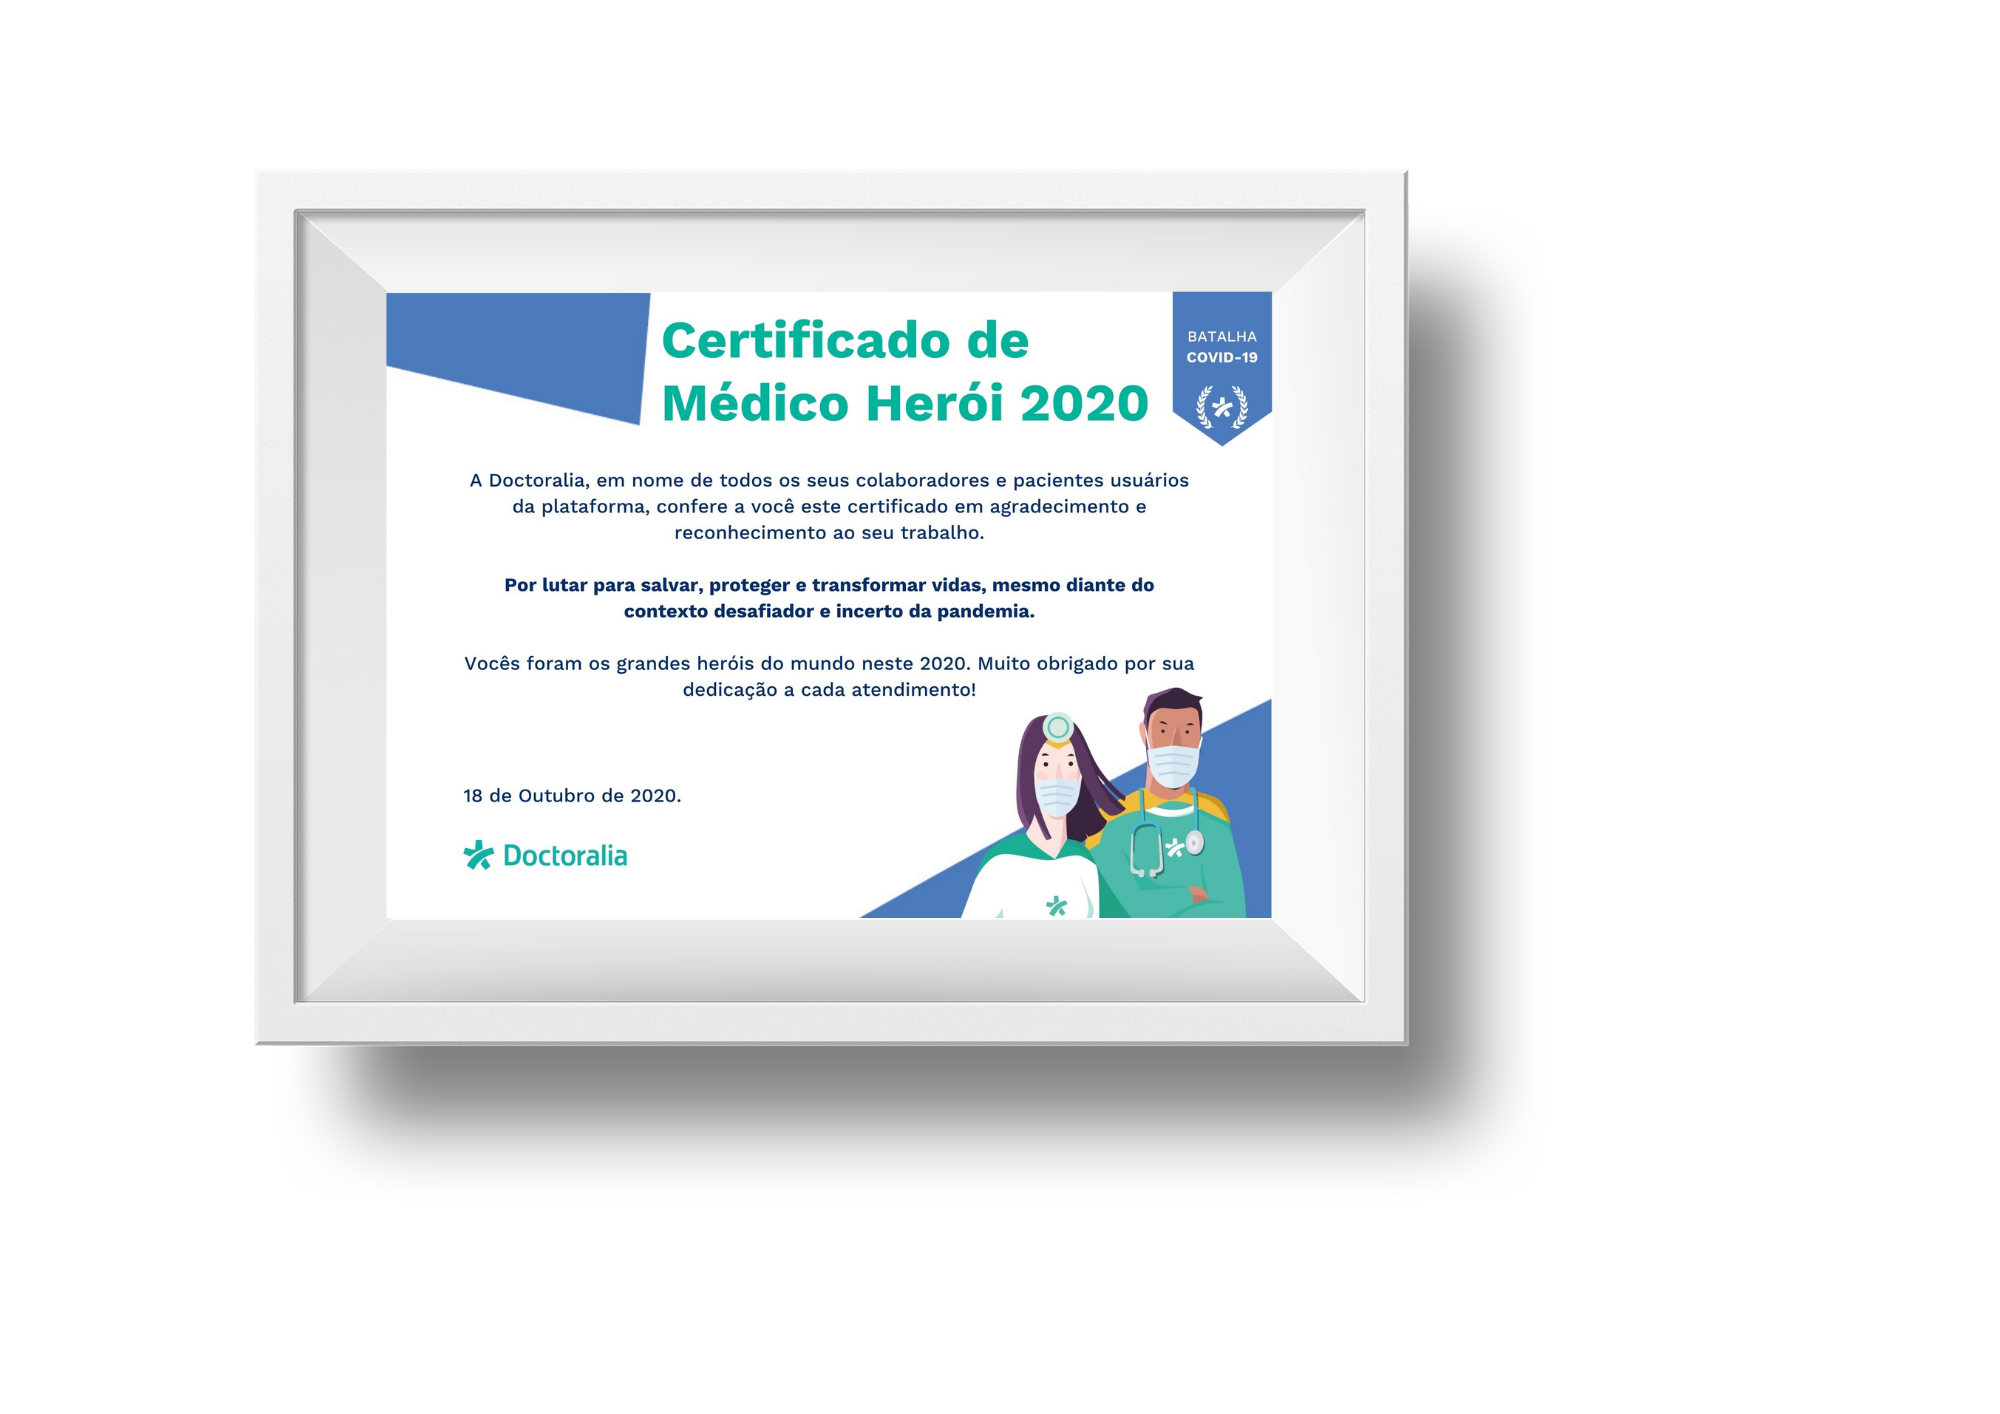 Certificado de Super Herói 2020 - downloadpng